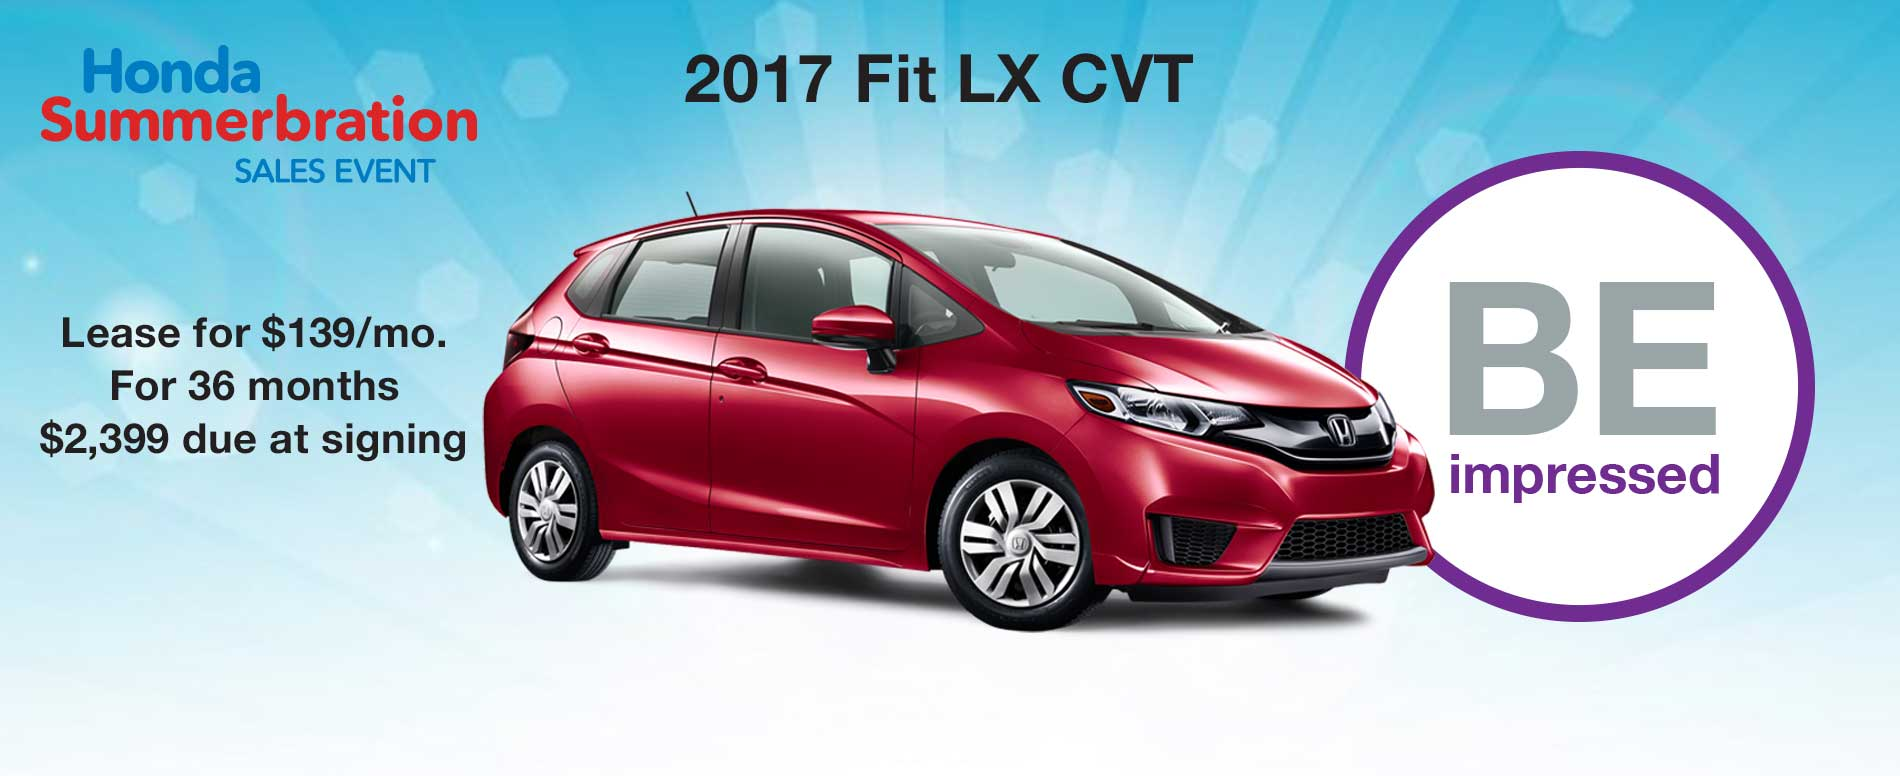 BE impressed. Lease a Honda Fit LX for $139 per month with $2,399 due at signing.